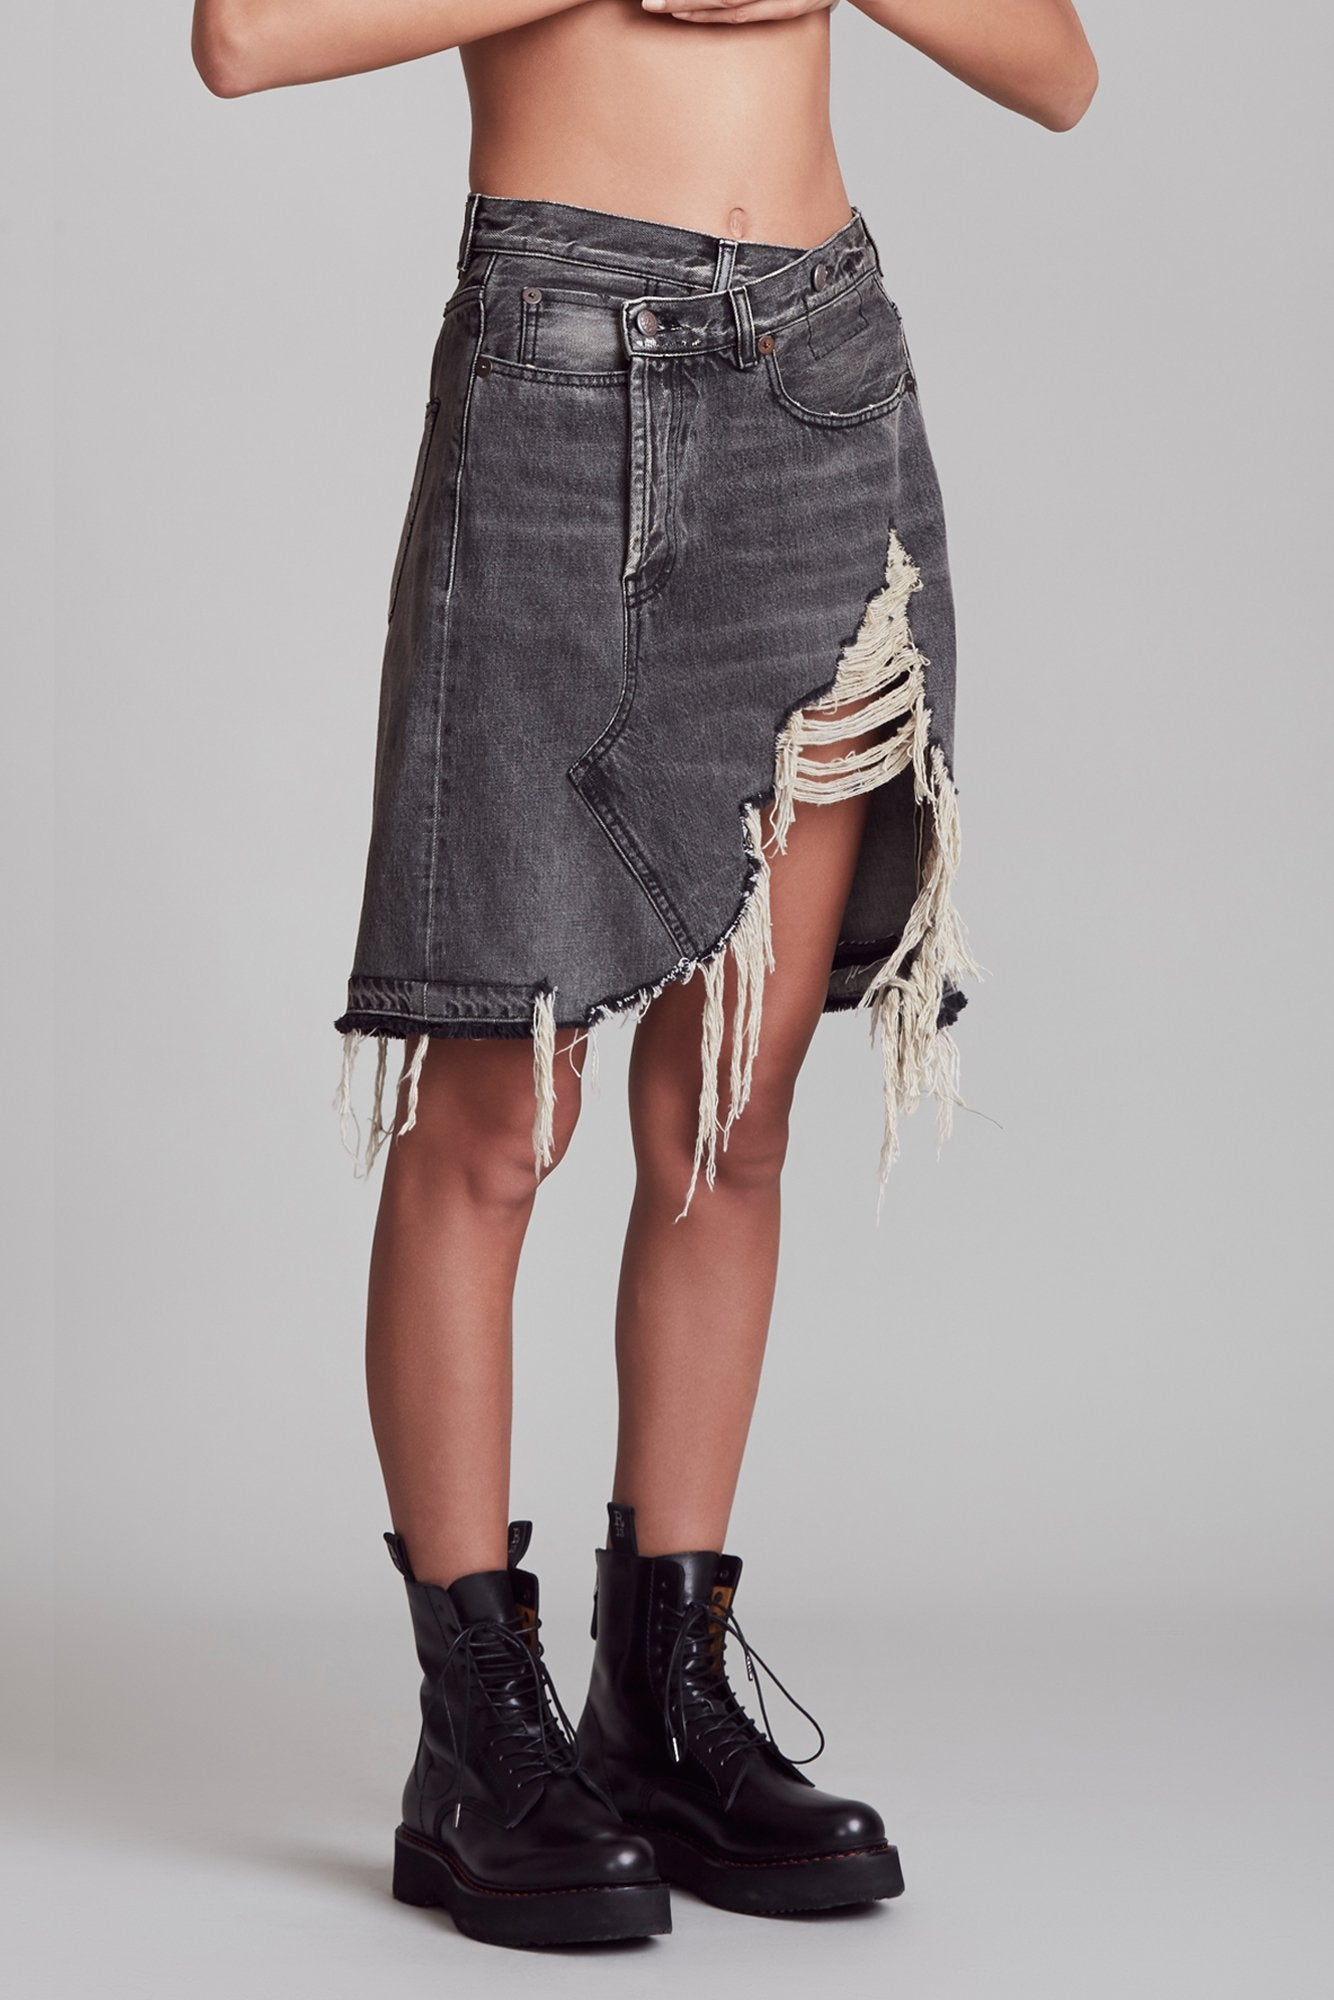 Norbury Denim Skirt - Leyton Black